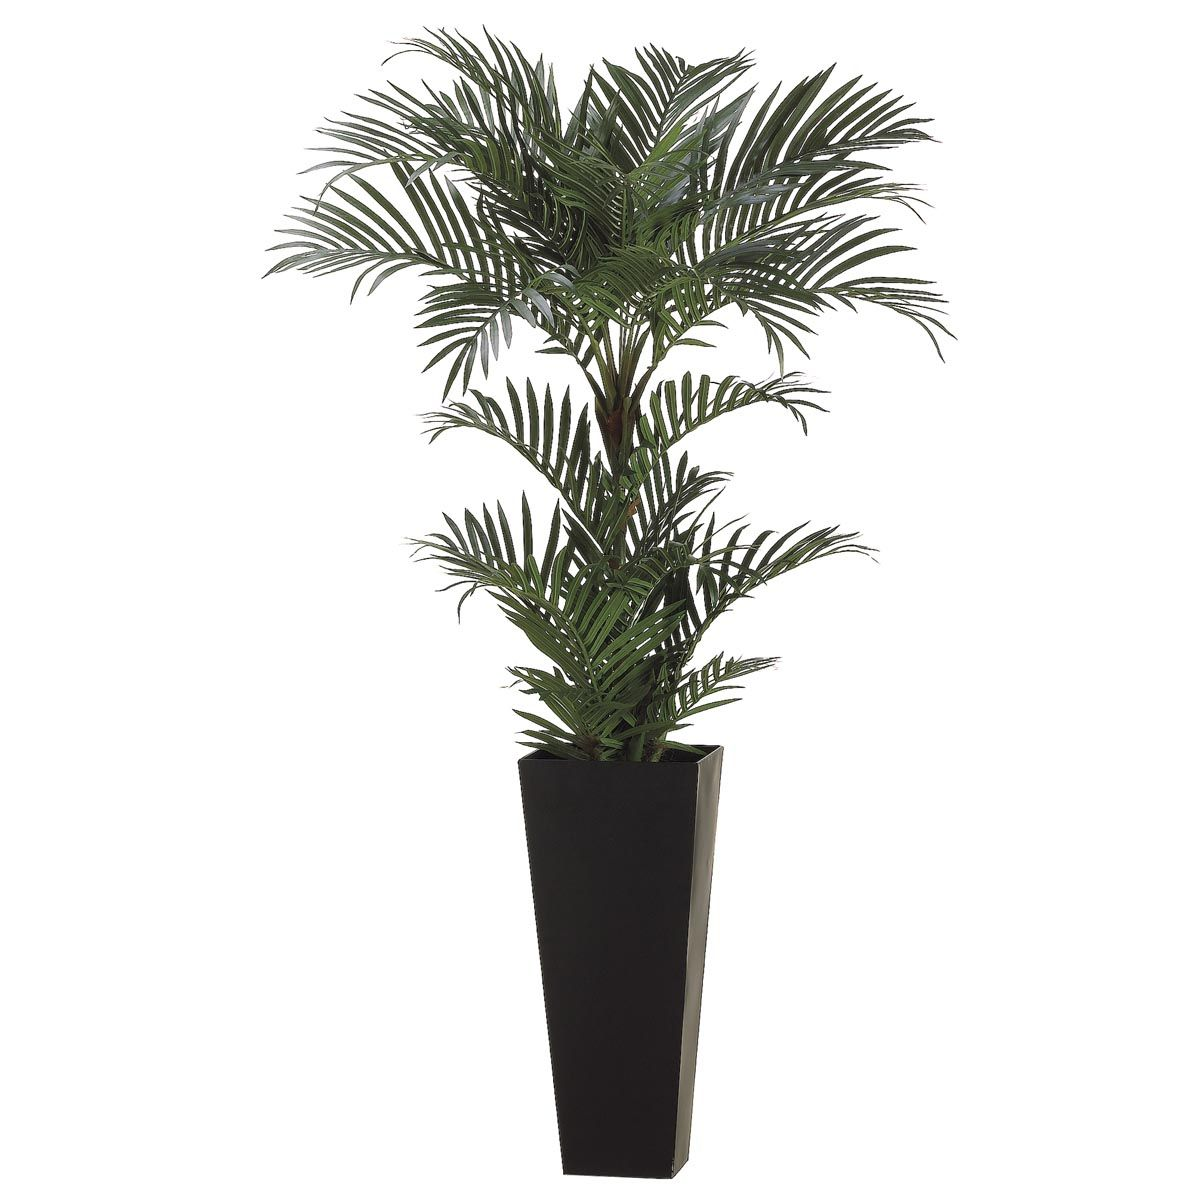 Huge selection of online artificial plants, artificial trees